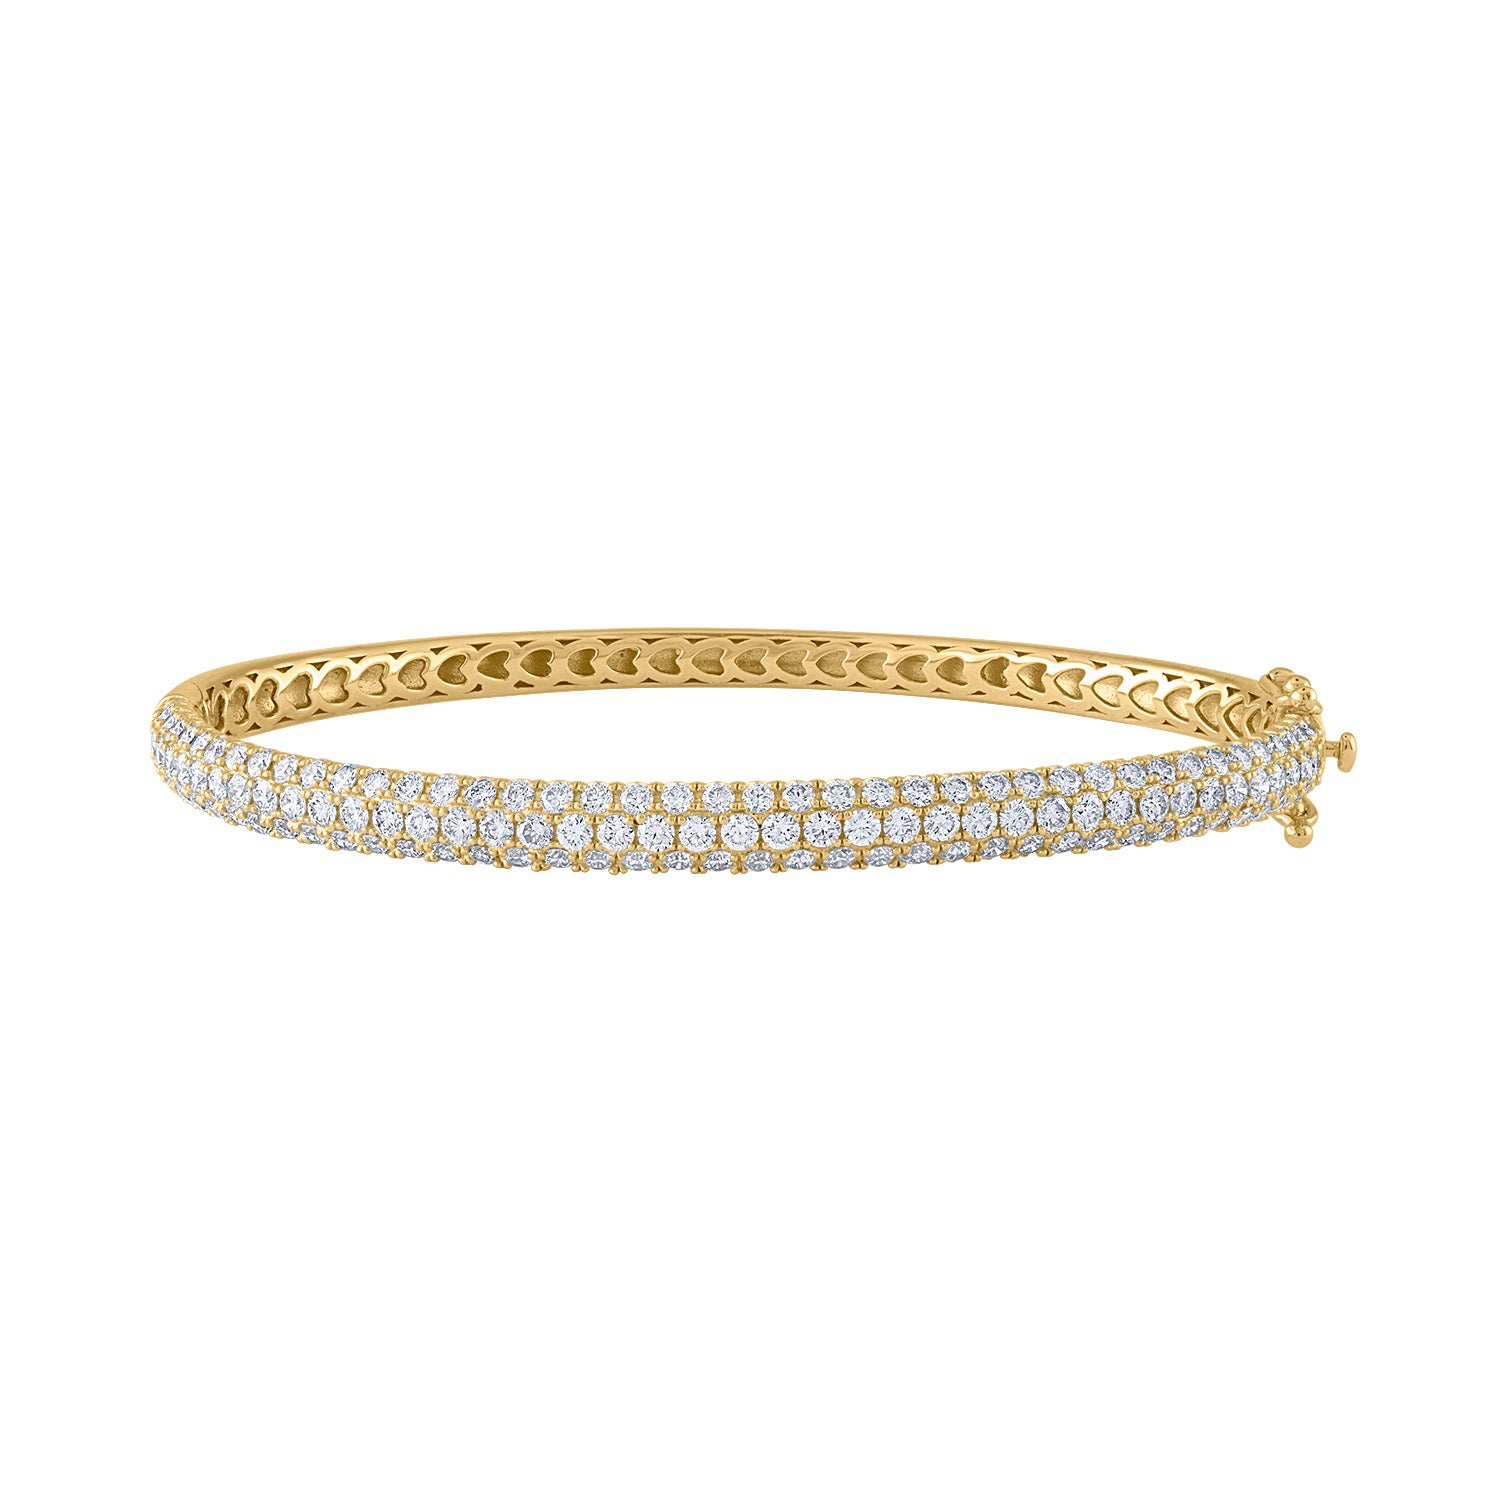 14KT GOLD THREE ROW PAVE DIAMOND BANGLE BRACELET